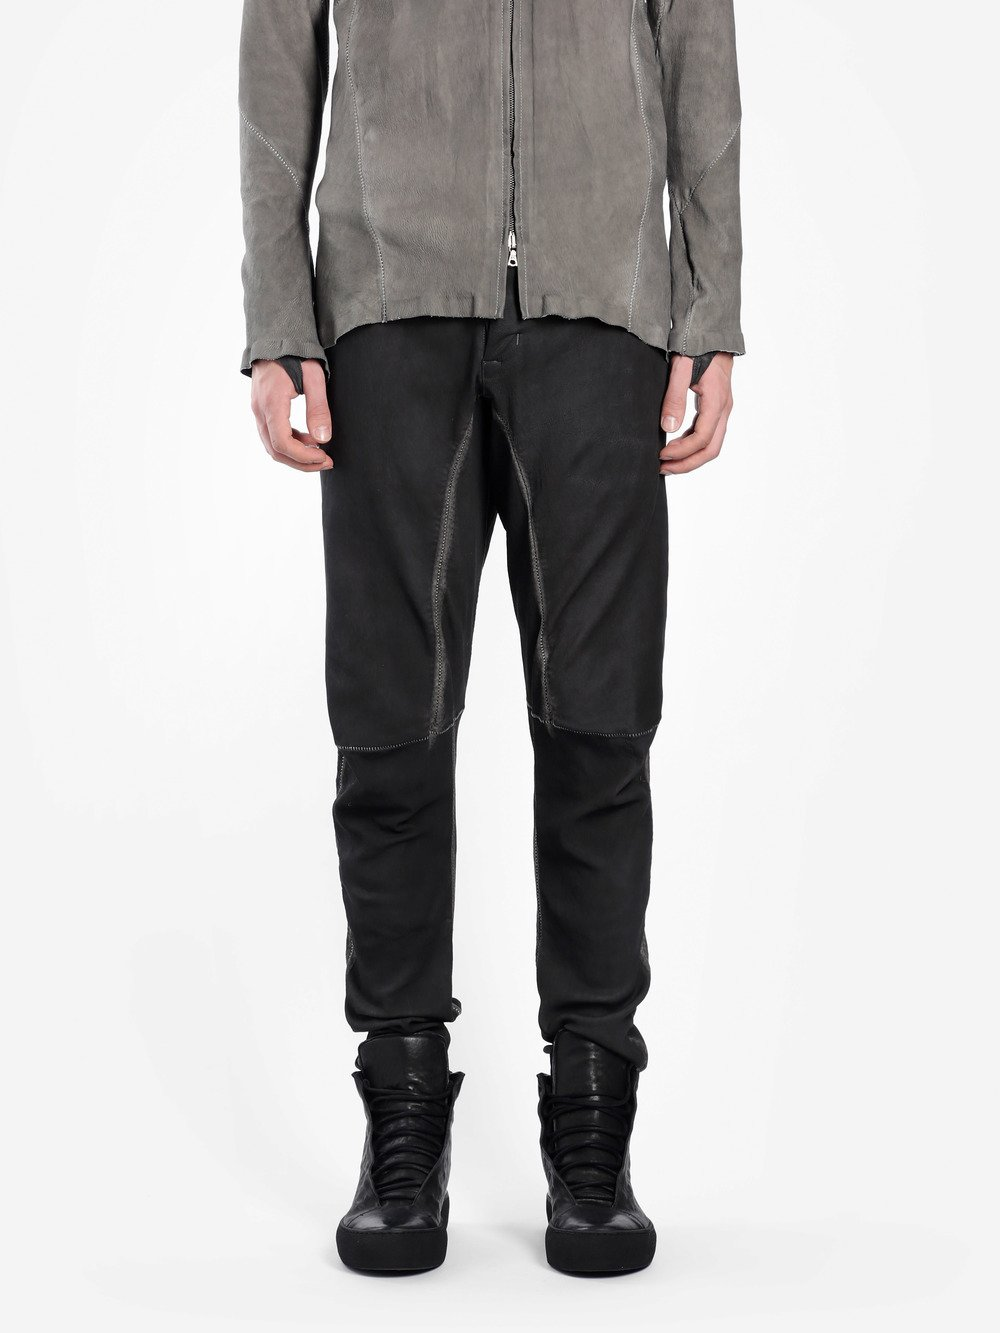 ISAAC SELLAM MEN'S BLACK LEATHER TROUSERS